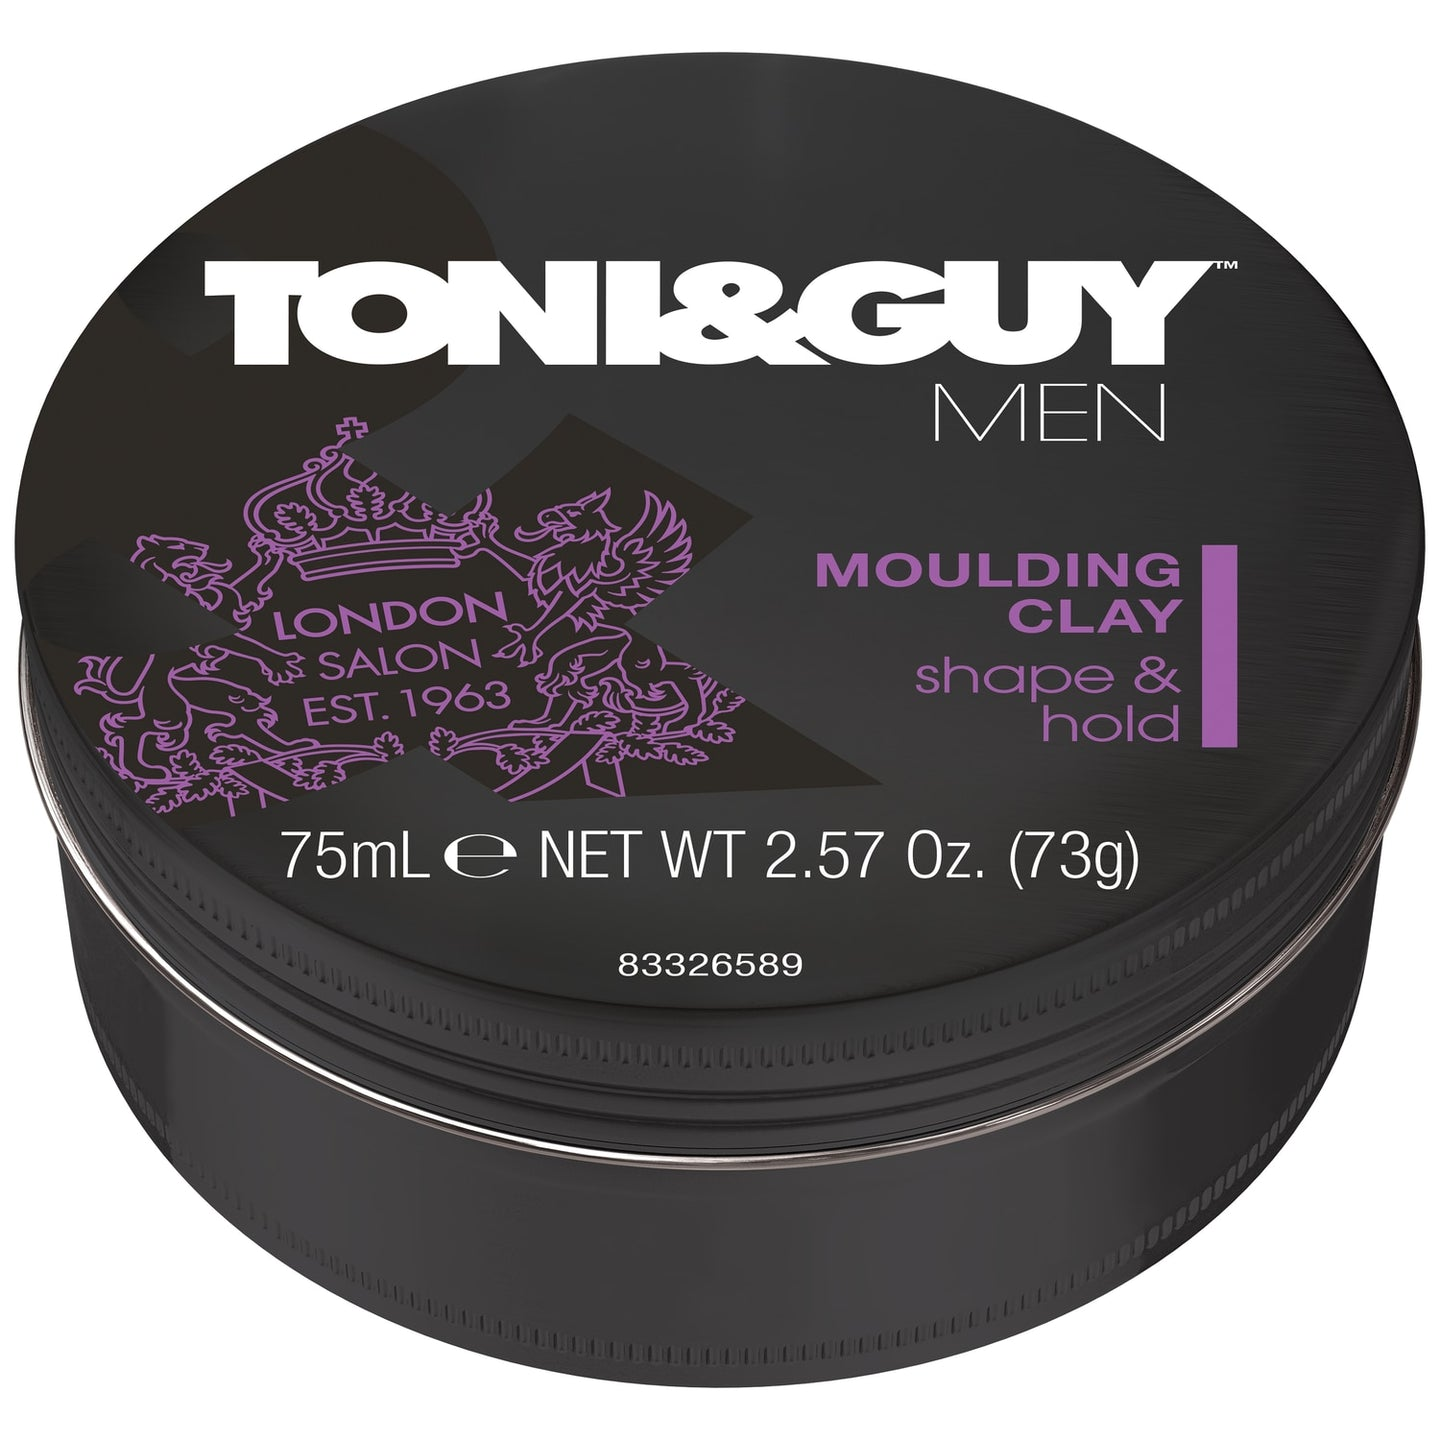 Toni&Guy Men Moulding Clay 75ml